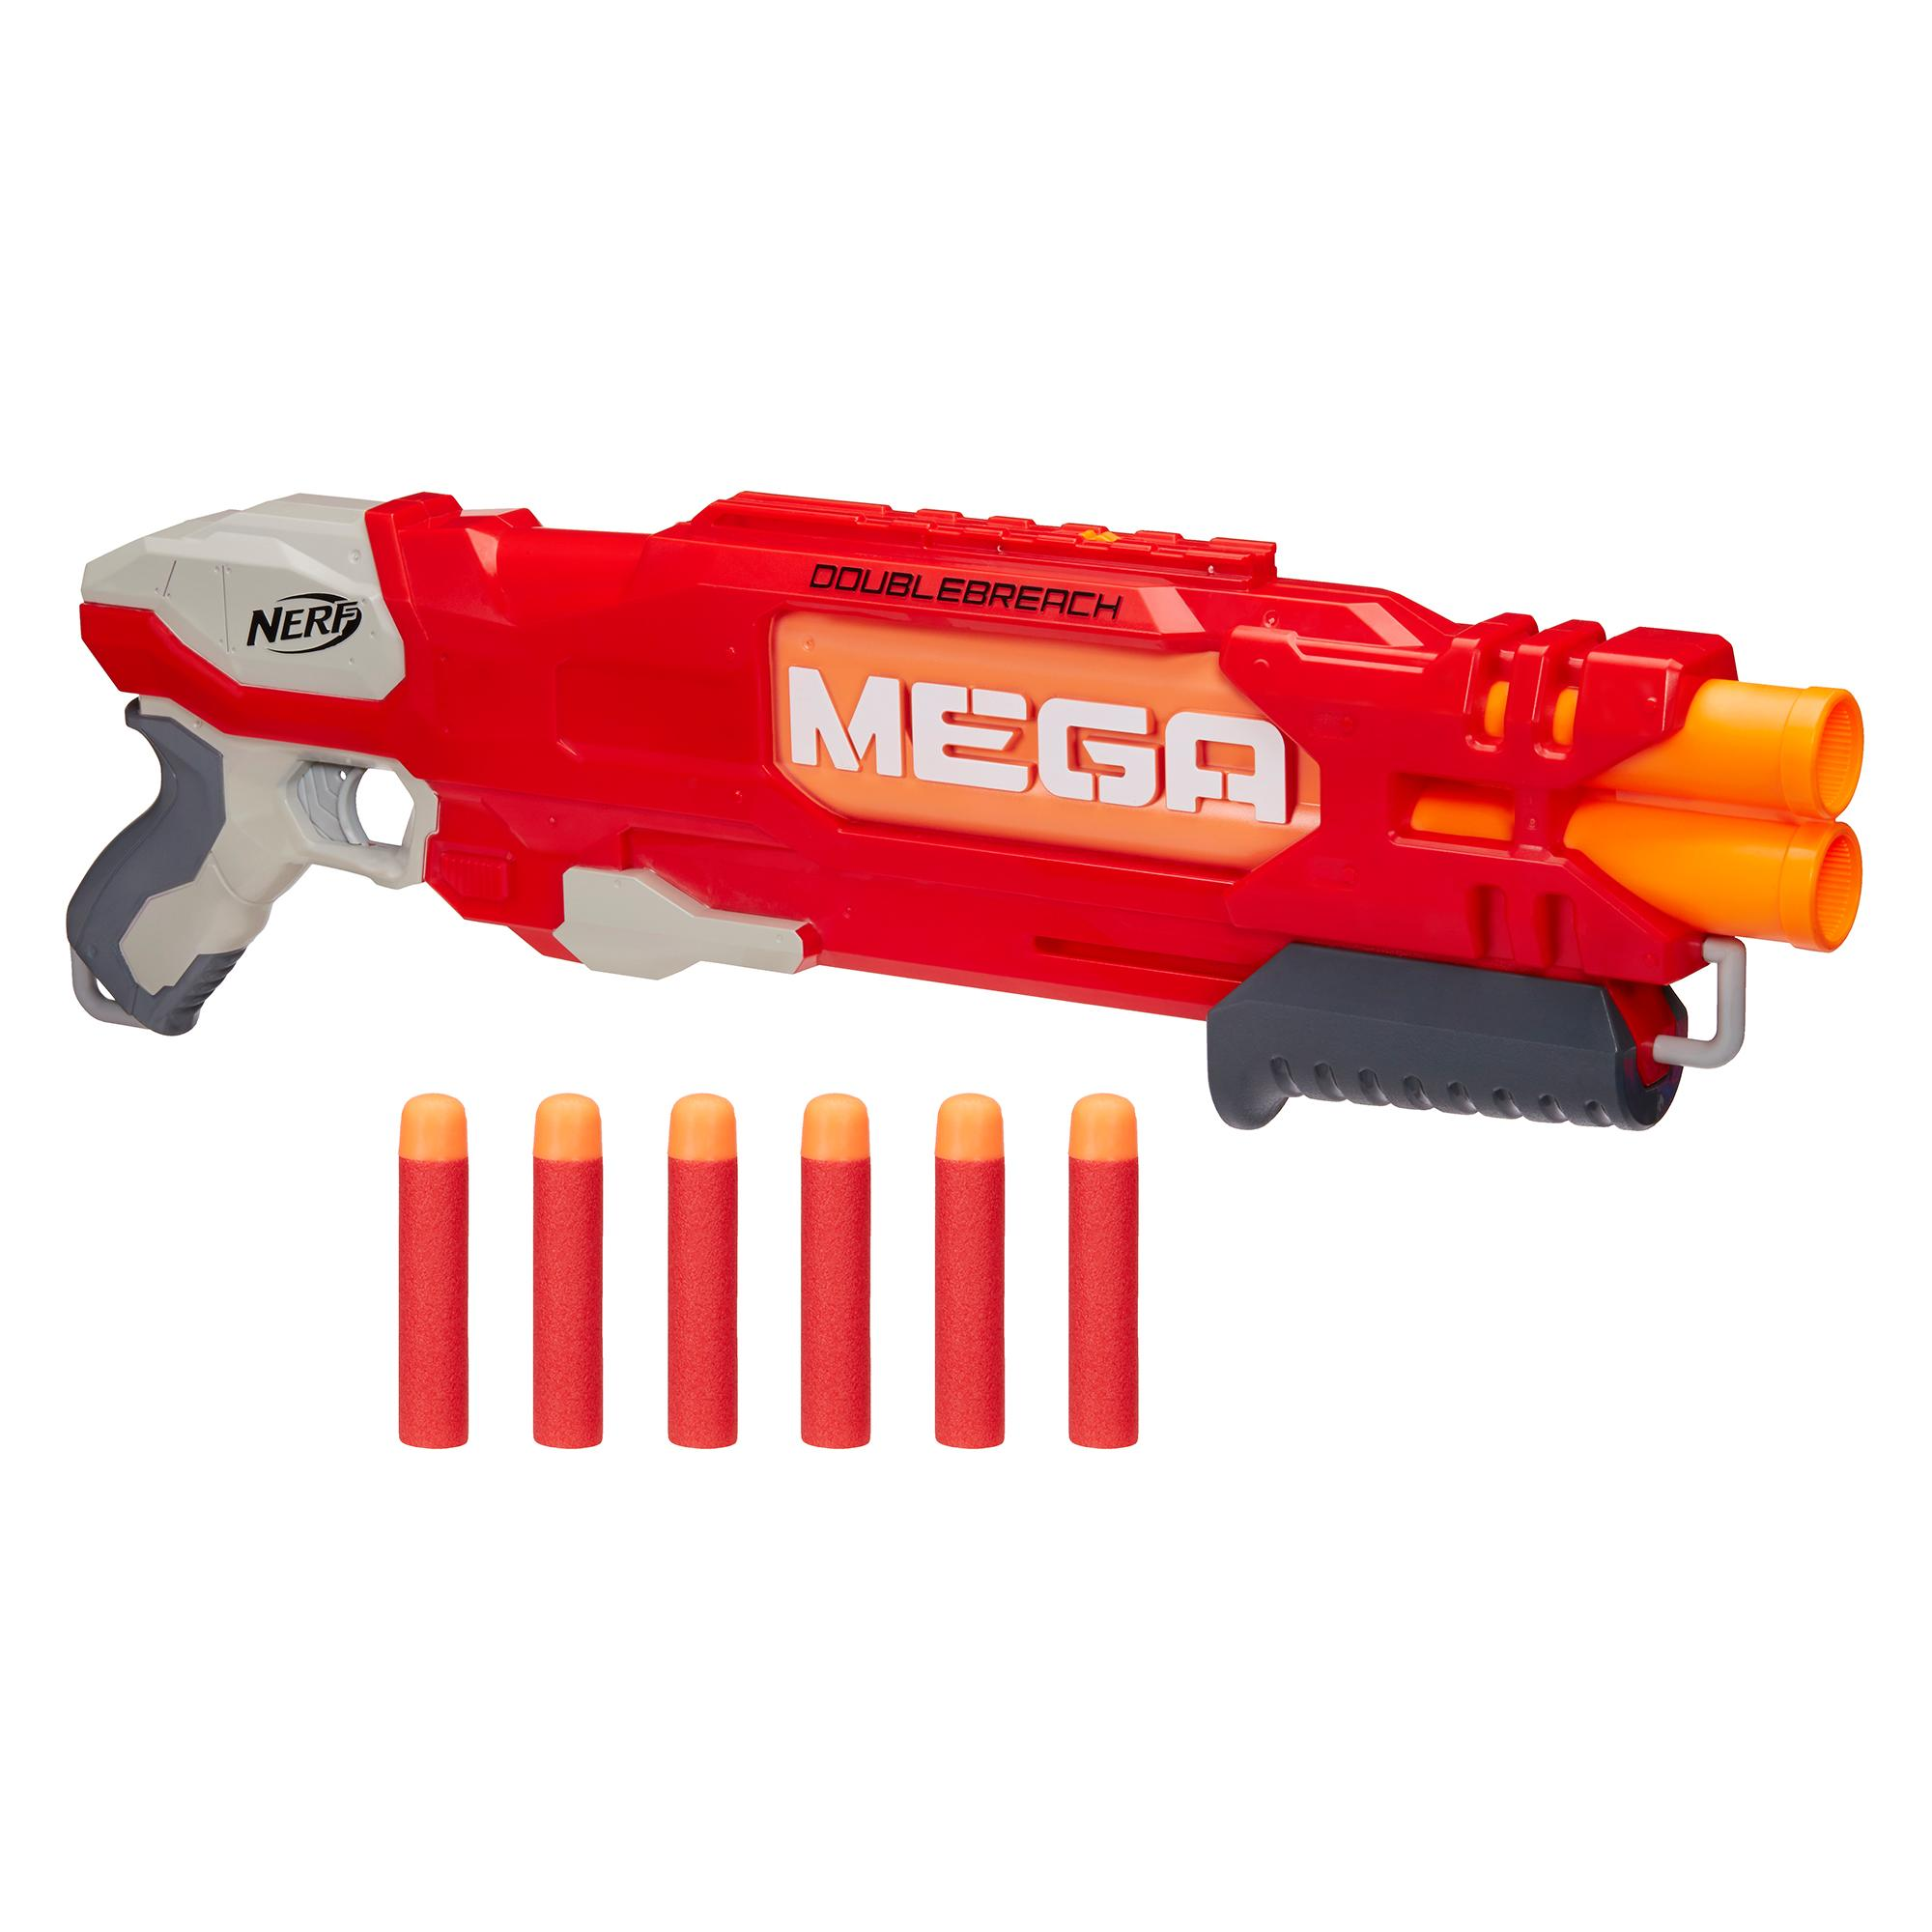 Nerf N-Strike Elite DoubleBreach Blaster